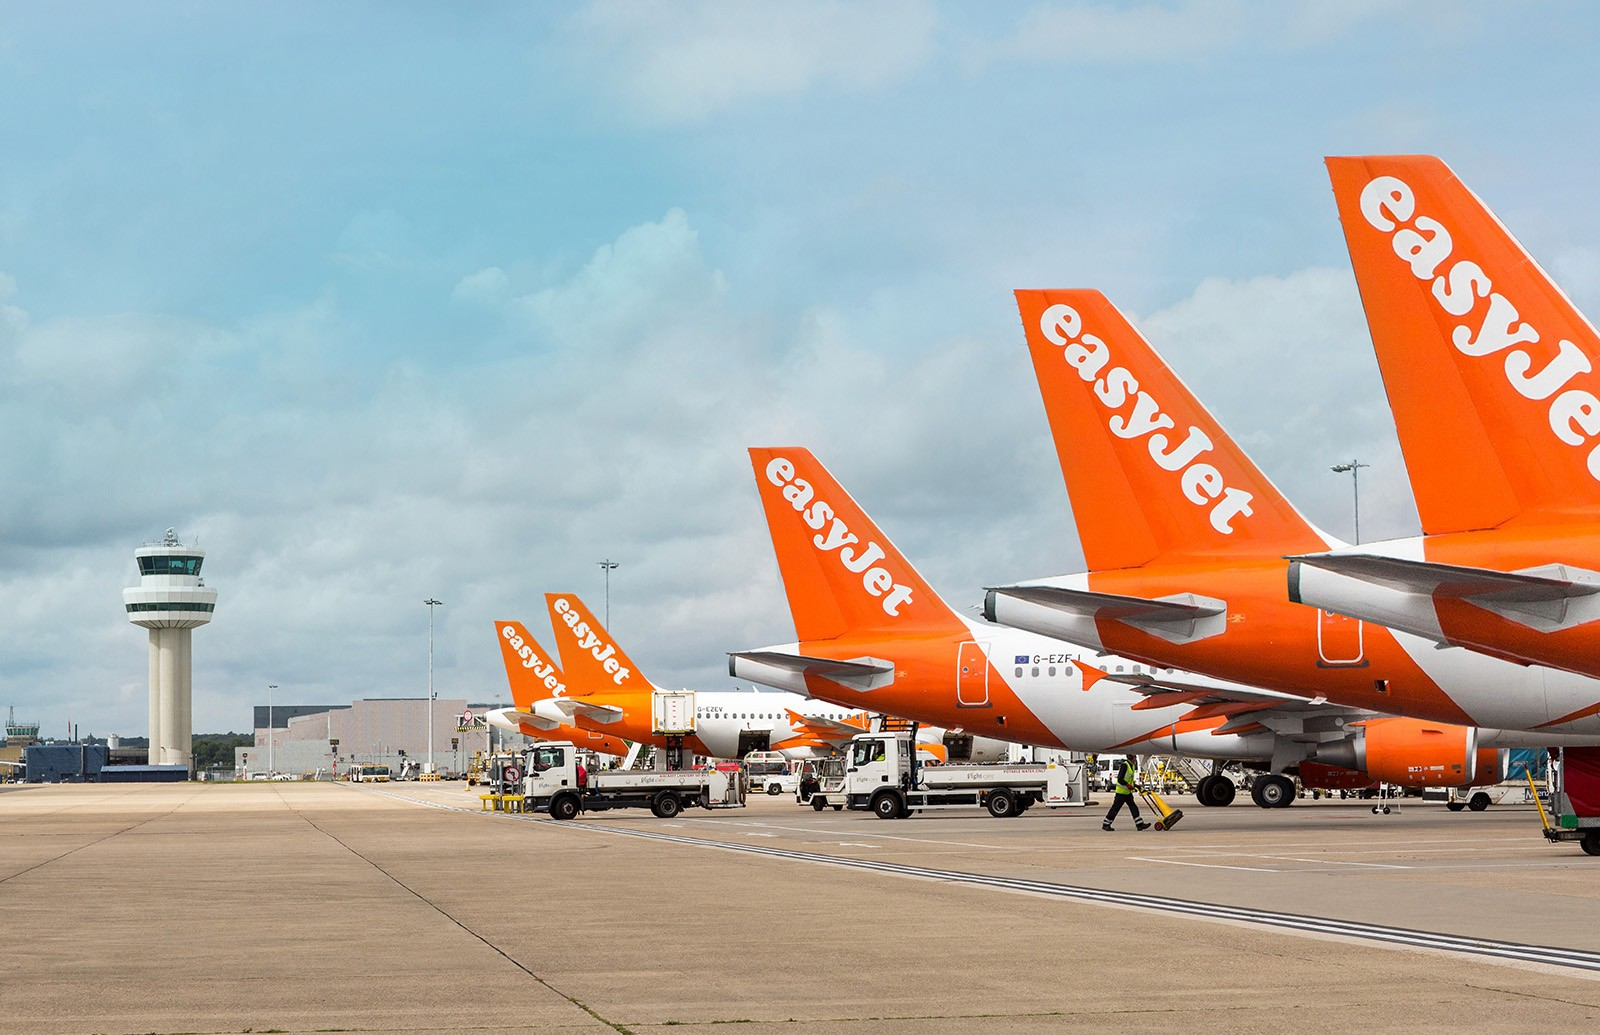 EasyJet With Routes To 30 Countries In August